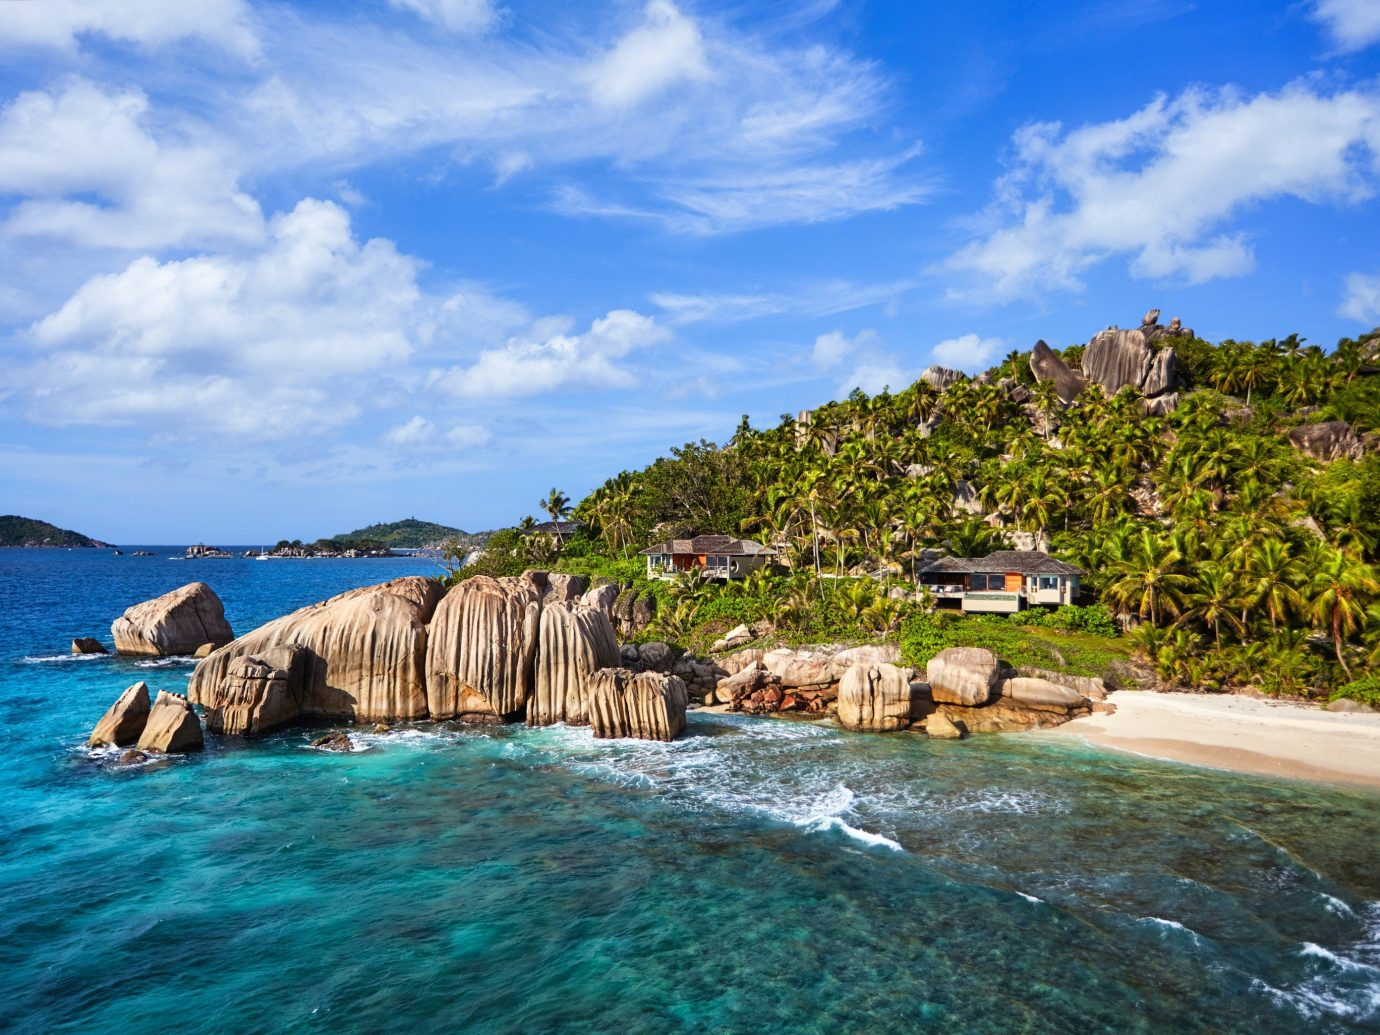 Hotels sky outdoor water Sea geographical feature landform Coast Beach Ocean shore vacation Nature bay islet cove Island caribbean tropics cape Lagoon terrain rock